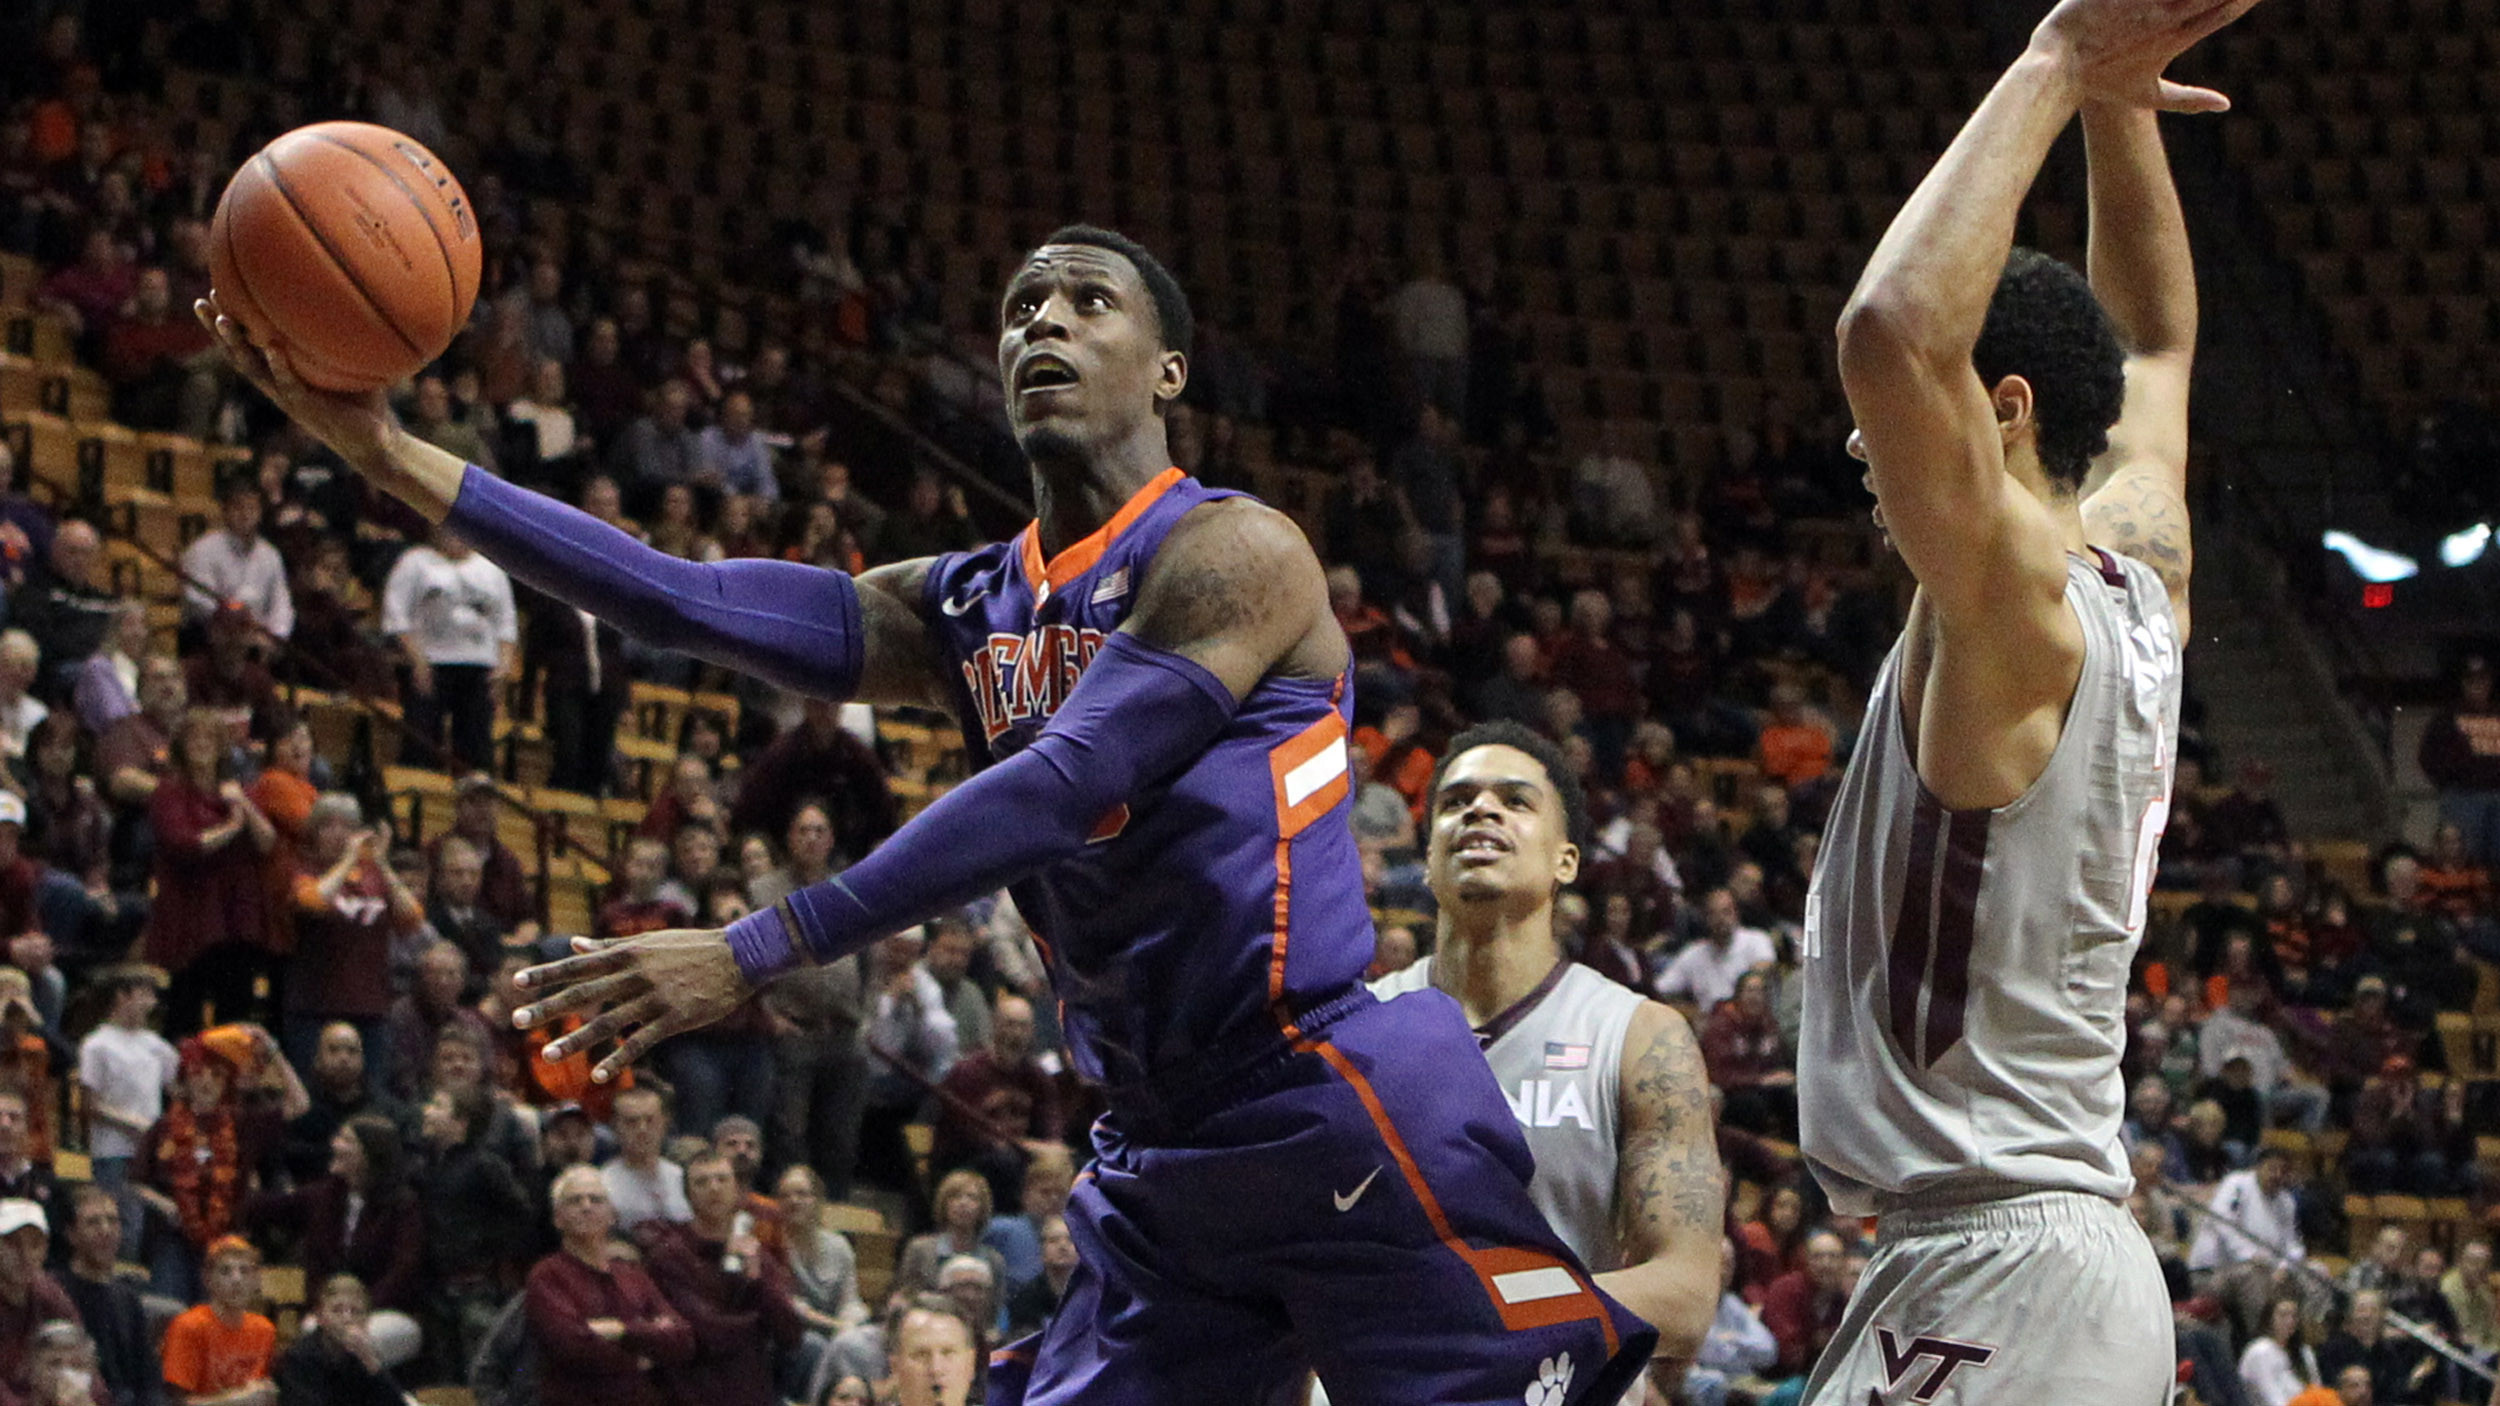 EXCLUSIVE: Filer Provides Purple Power in Win at Virginia Tech